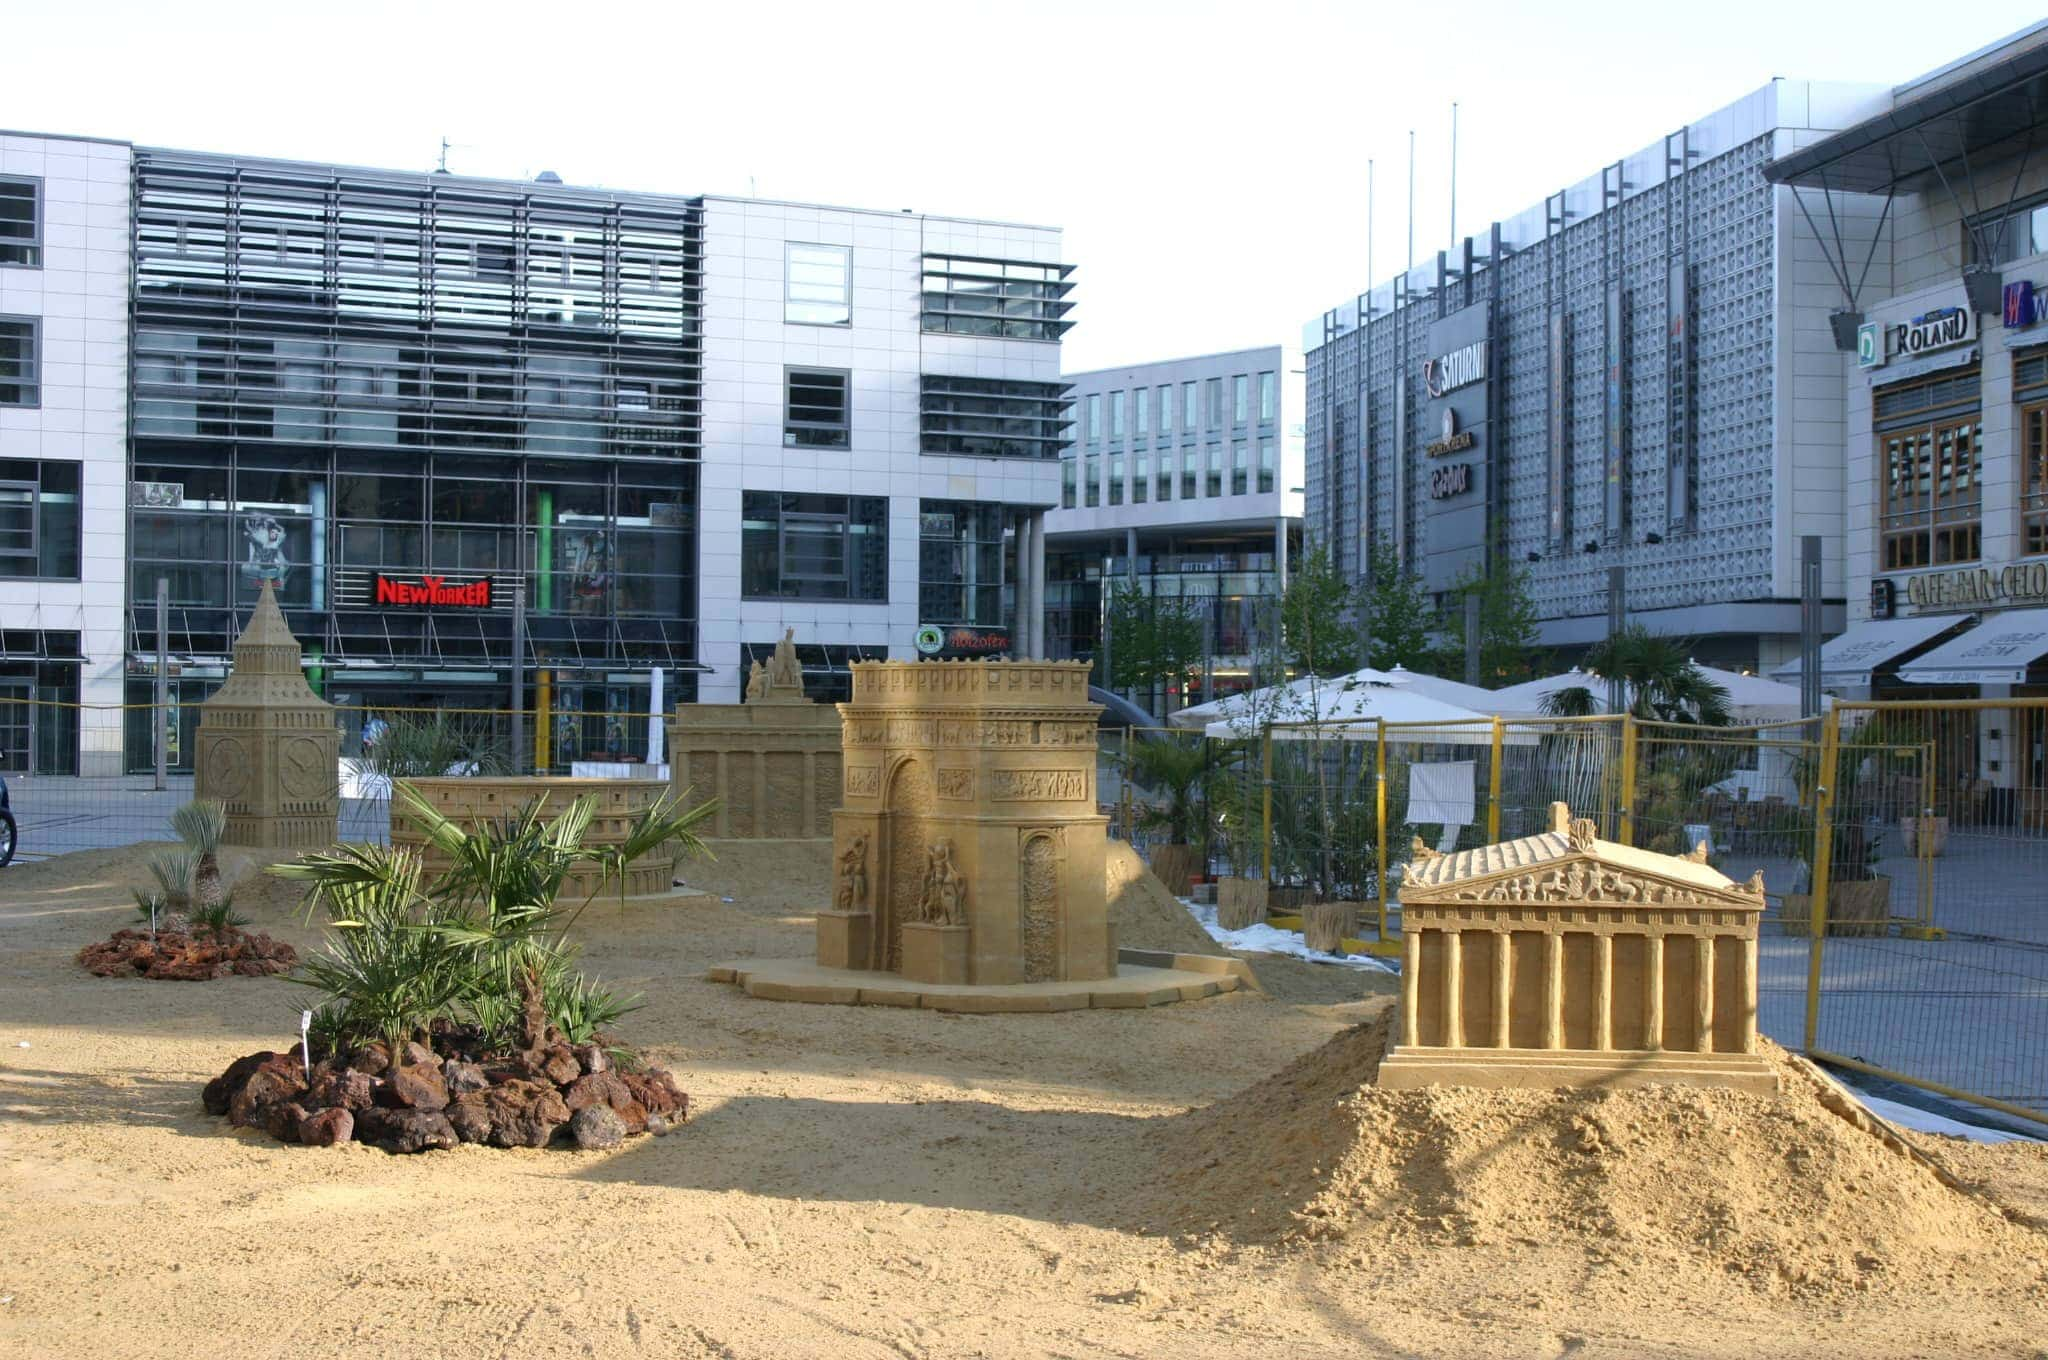 Sand sculptures in City marketing